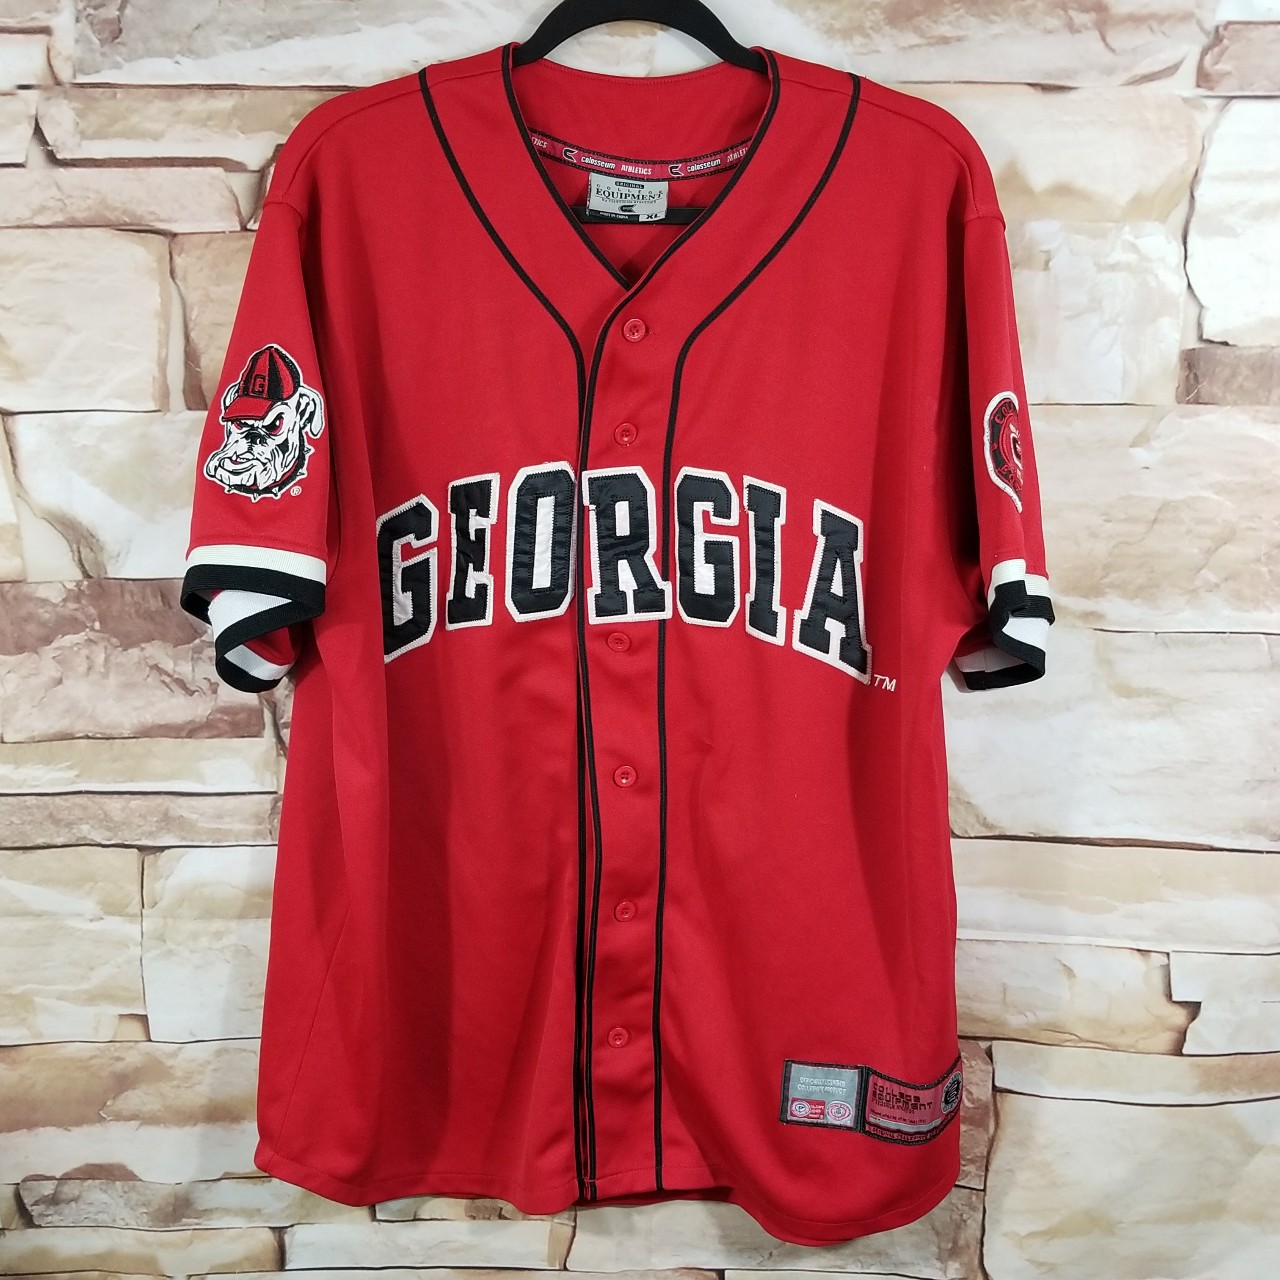 100% authentic 86bca 2d2bc Georgia Bulldogs baseball Jersey embroidered 33... - Depop